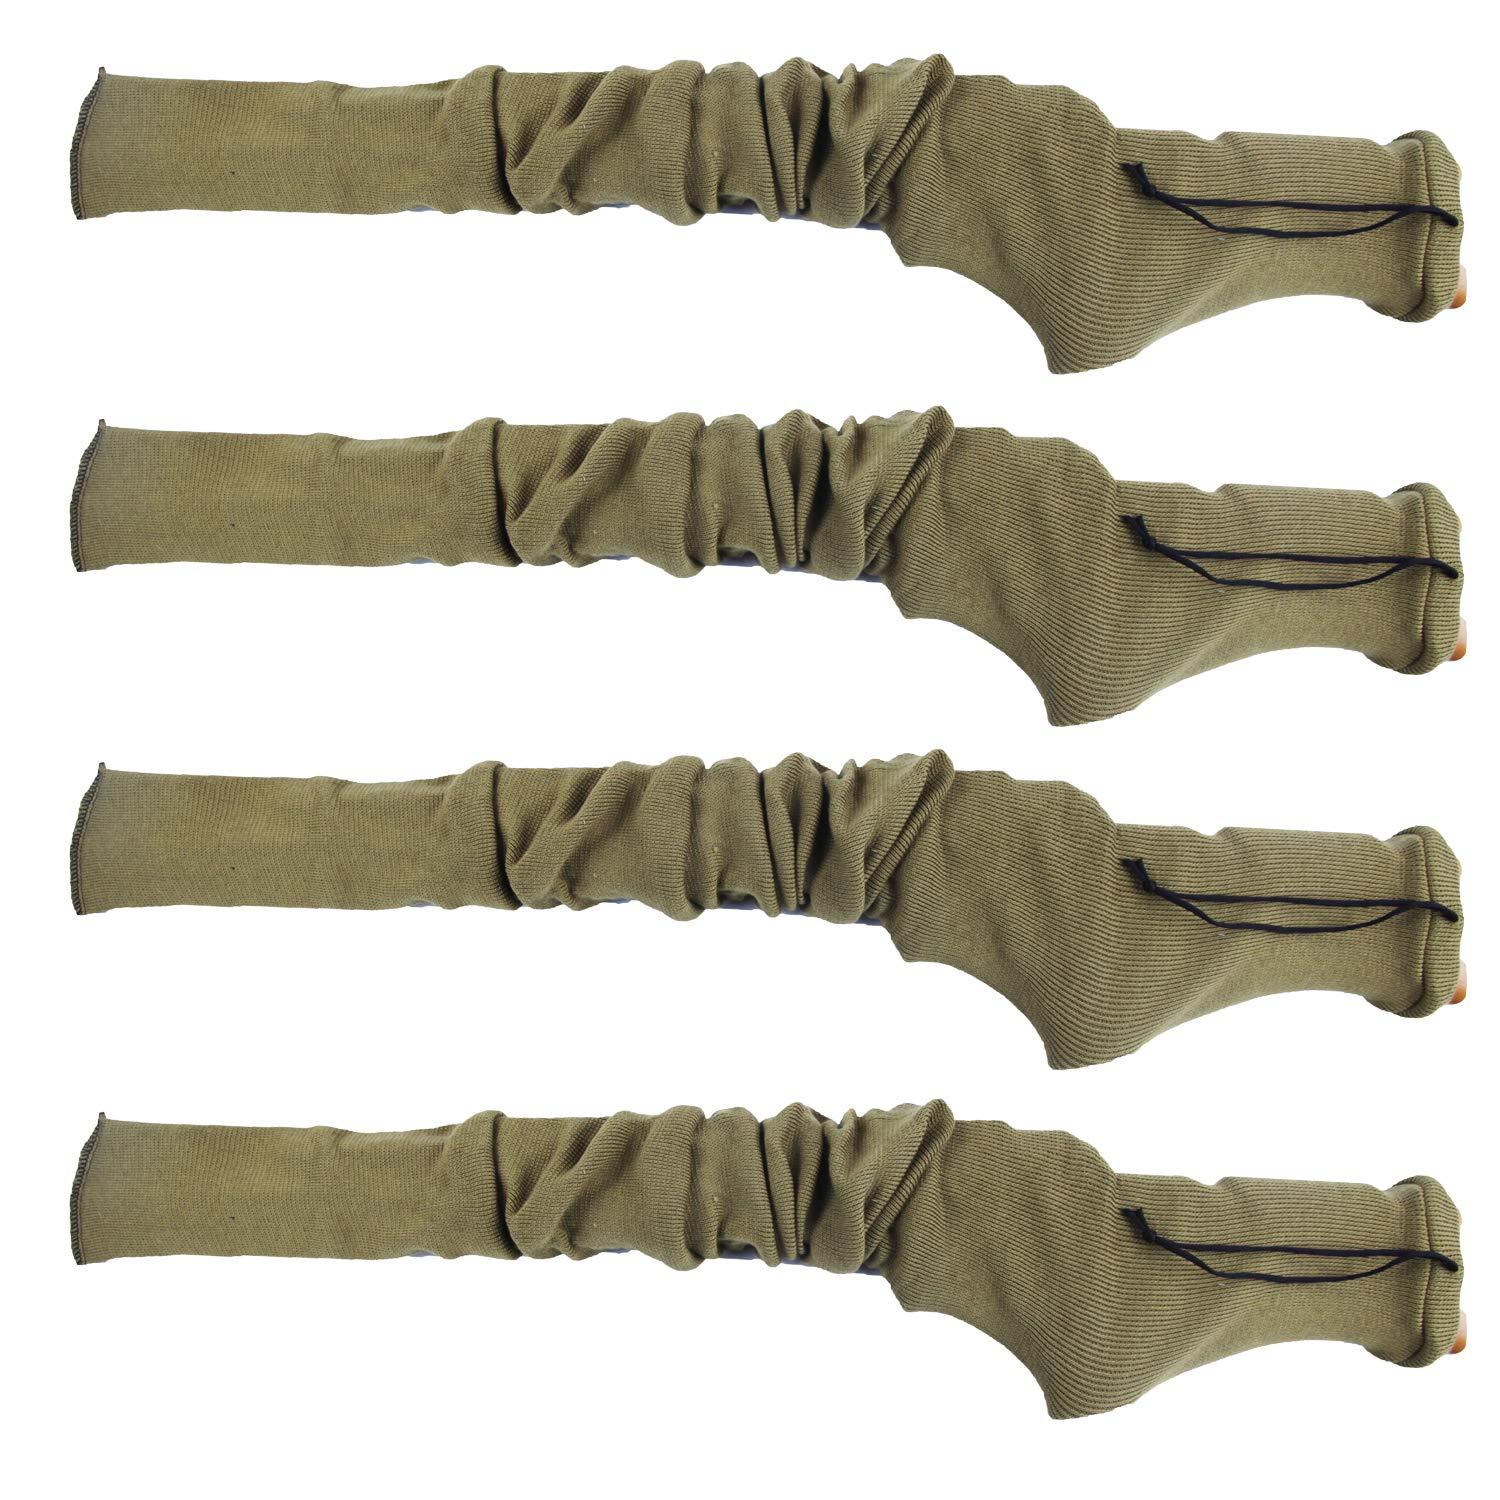 GUGULUZA Silicone Treated Knit Gun Socks 52'' for Rifles Shotgun (Khaki - 4 Pack) by GUGULUZA